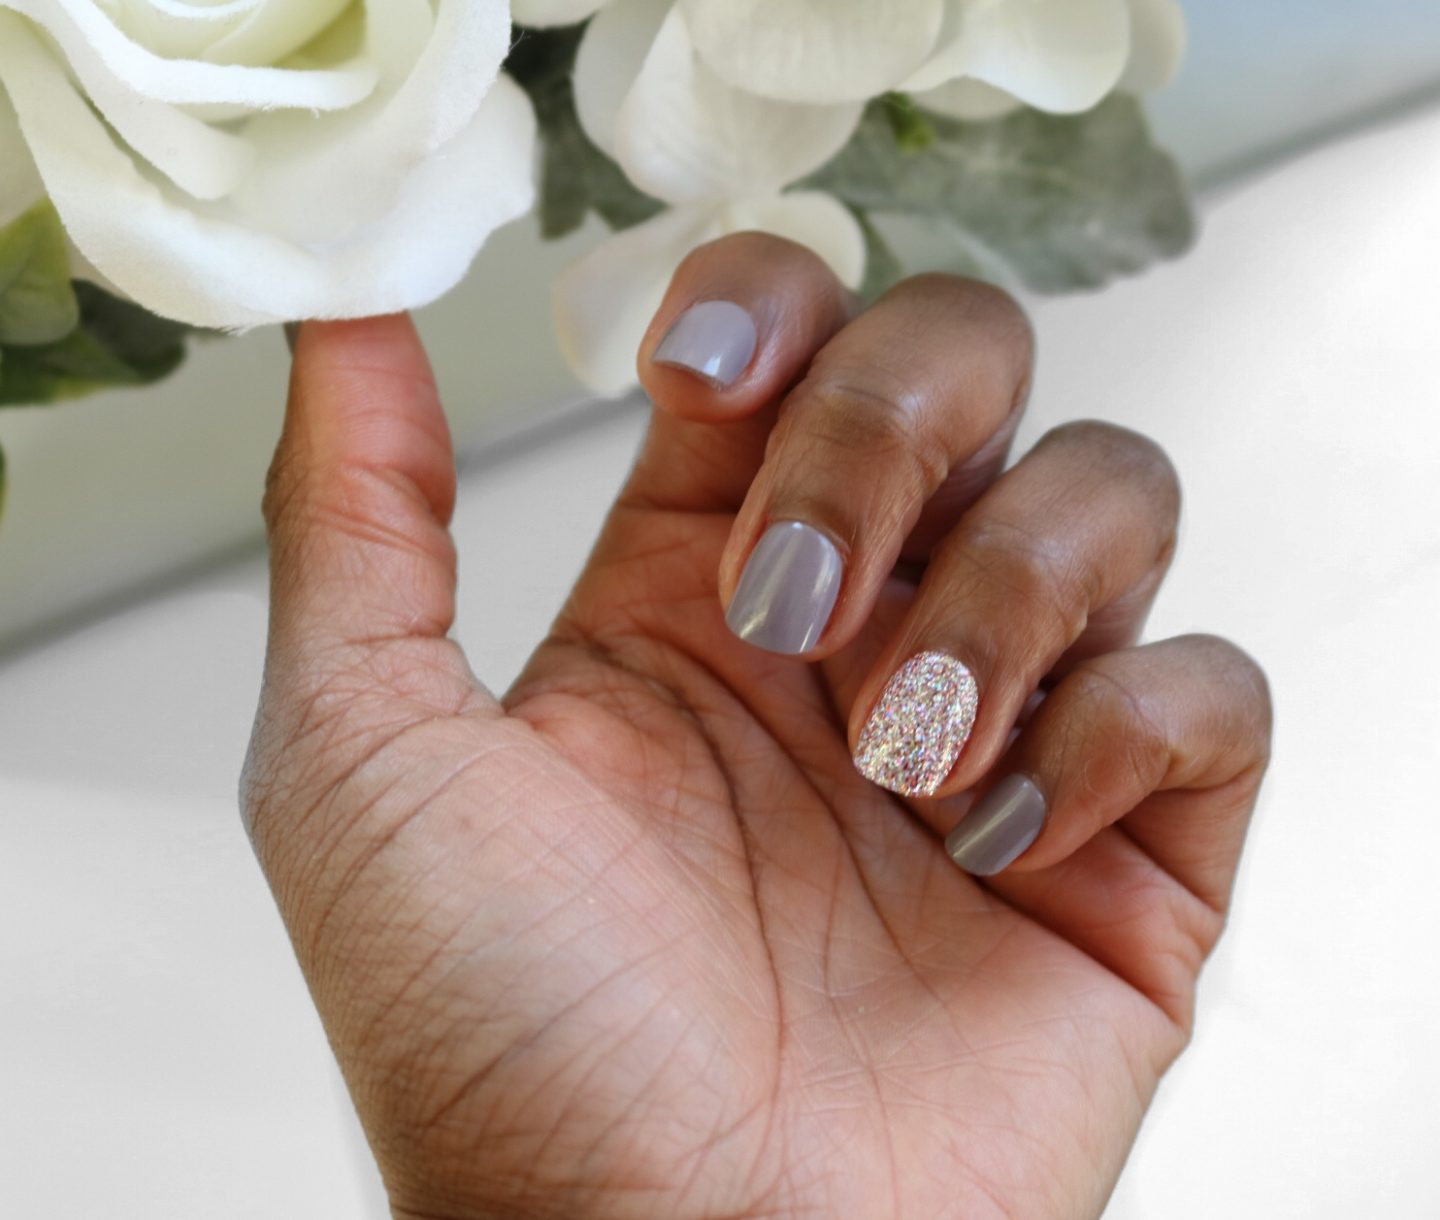 Obsessed: salon style nails in 15 minutes